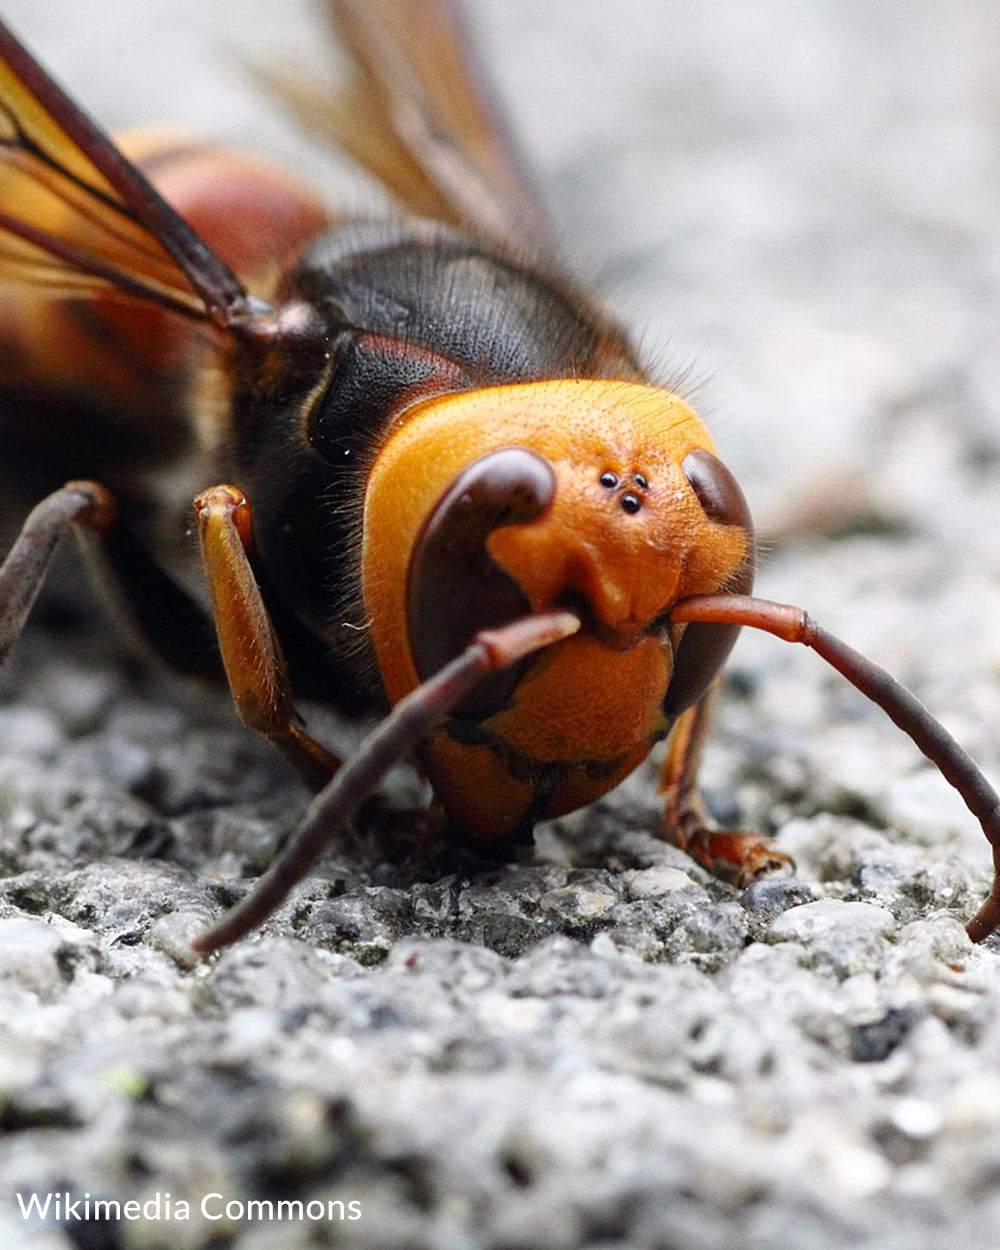 Asian giant hornets can surround and kill a hive of bees in less than an hour.